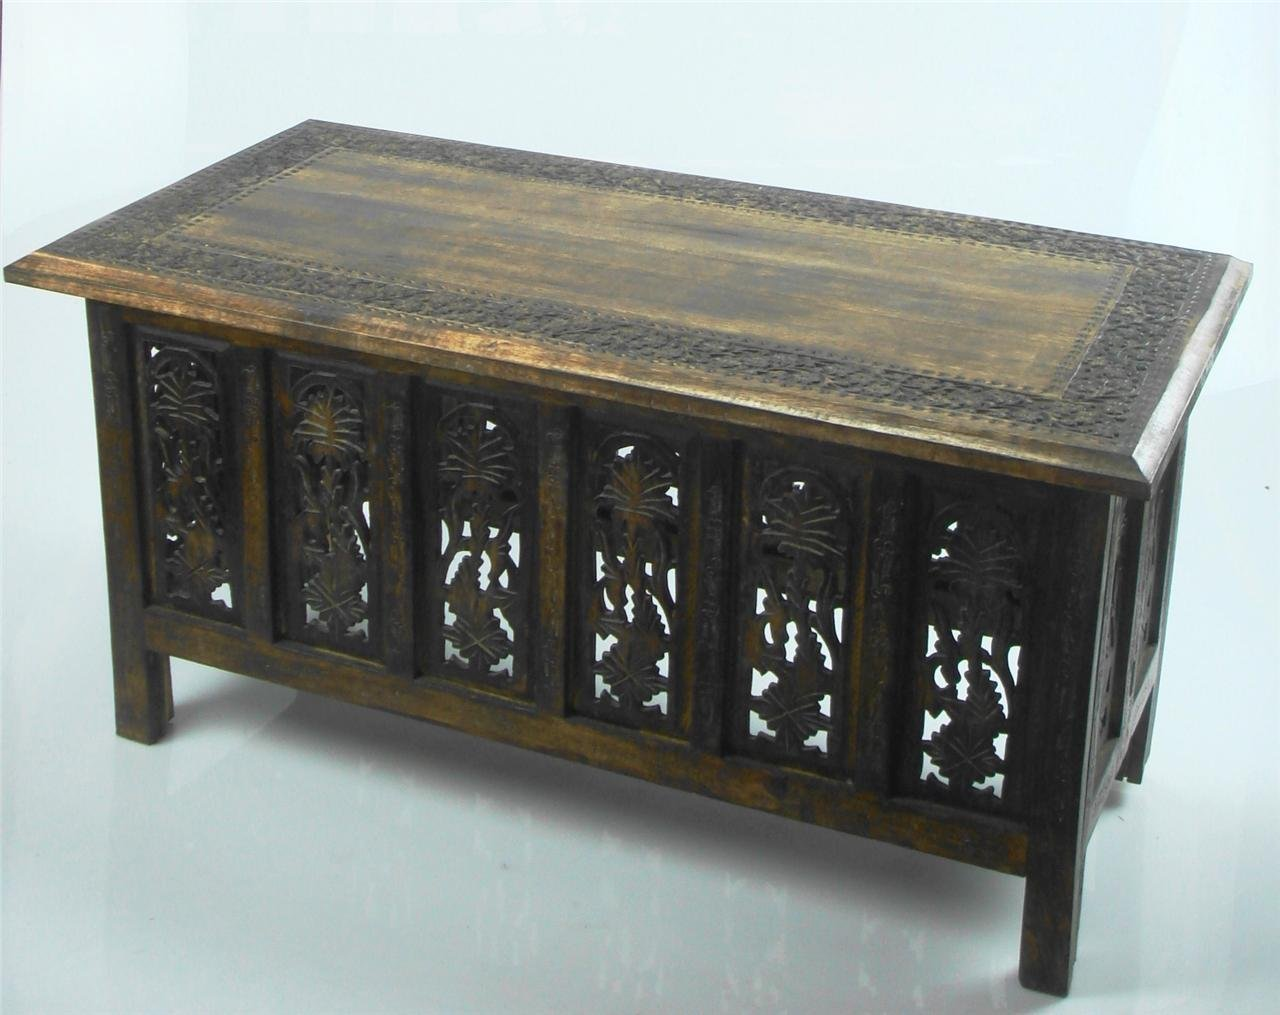 Beautiful Brown White Hand Carved Indian Wooden Coffee Table Side Tables 91x46cm Topfurnishing Ltd VB-6CAG-O19Q